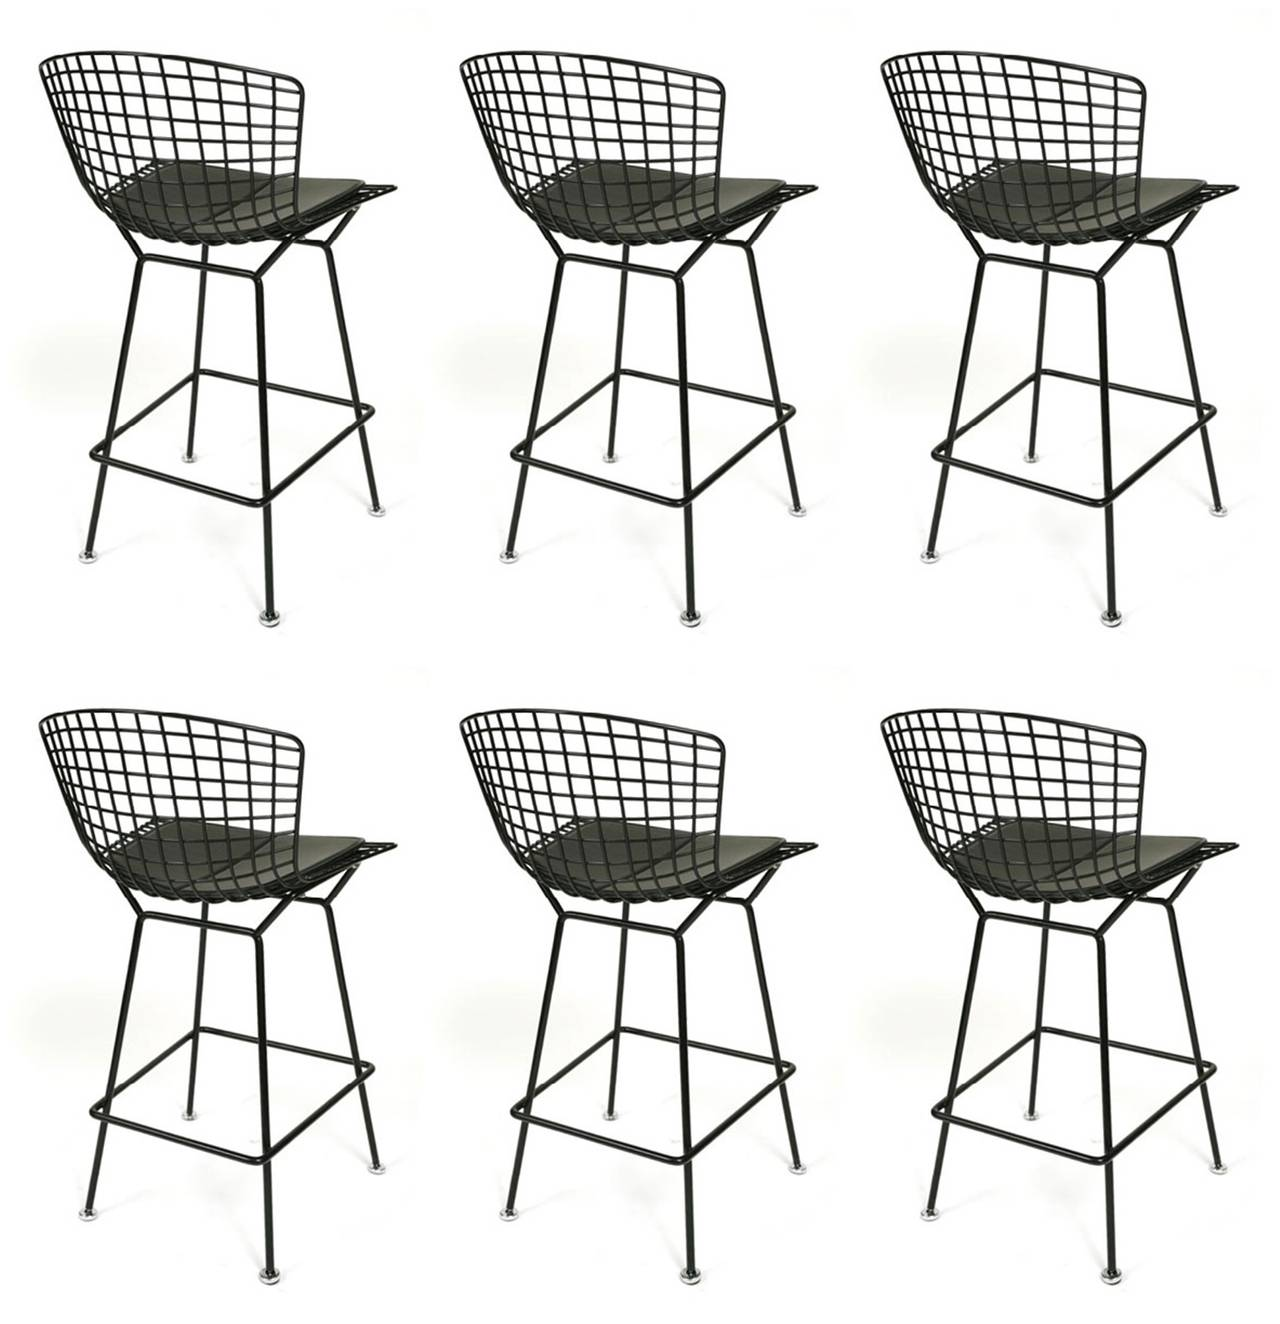 Set of six harry bertoia bar stools manufactured by knoll international for s - Tabouret bar bertoia ...